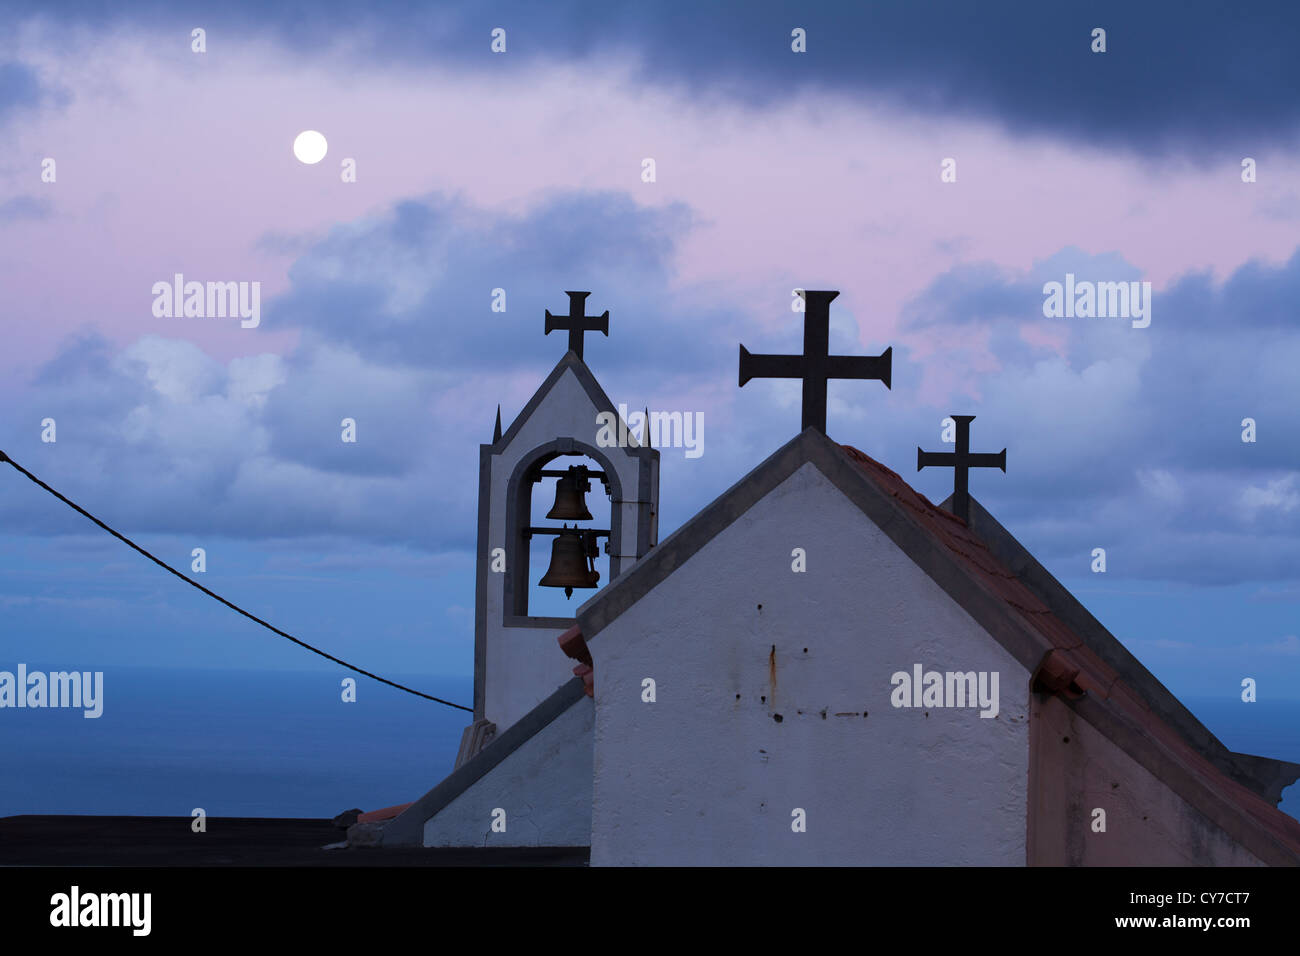 The roof and bells of the chapel at Cabo, Ponta do Pargo, Madeira, with the moon in in the background. - Stock Image